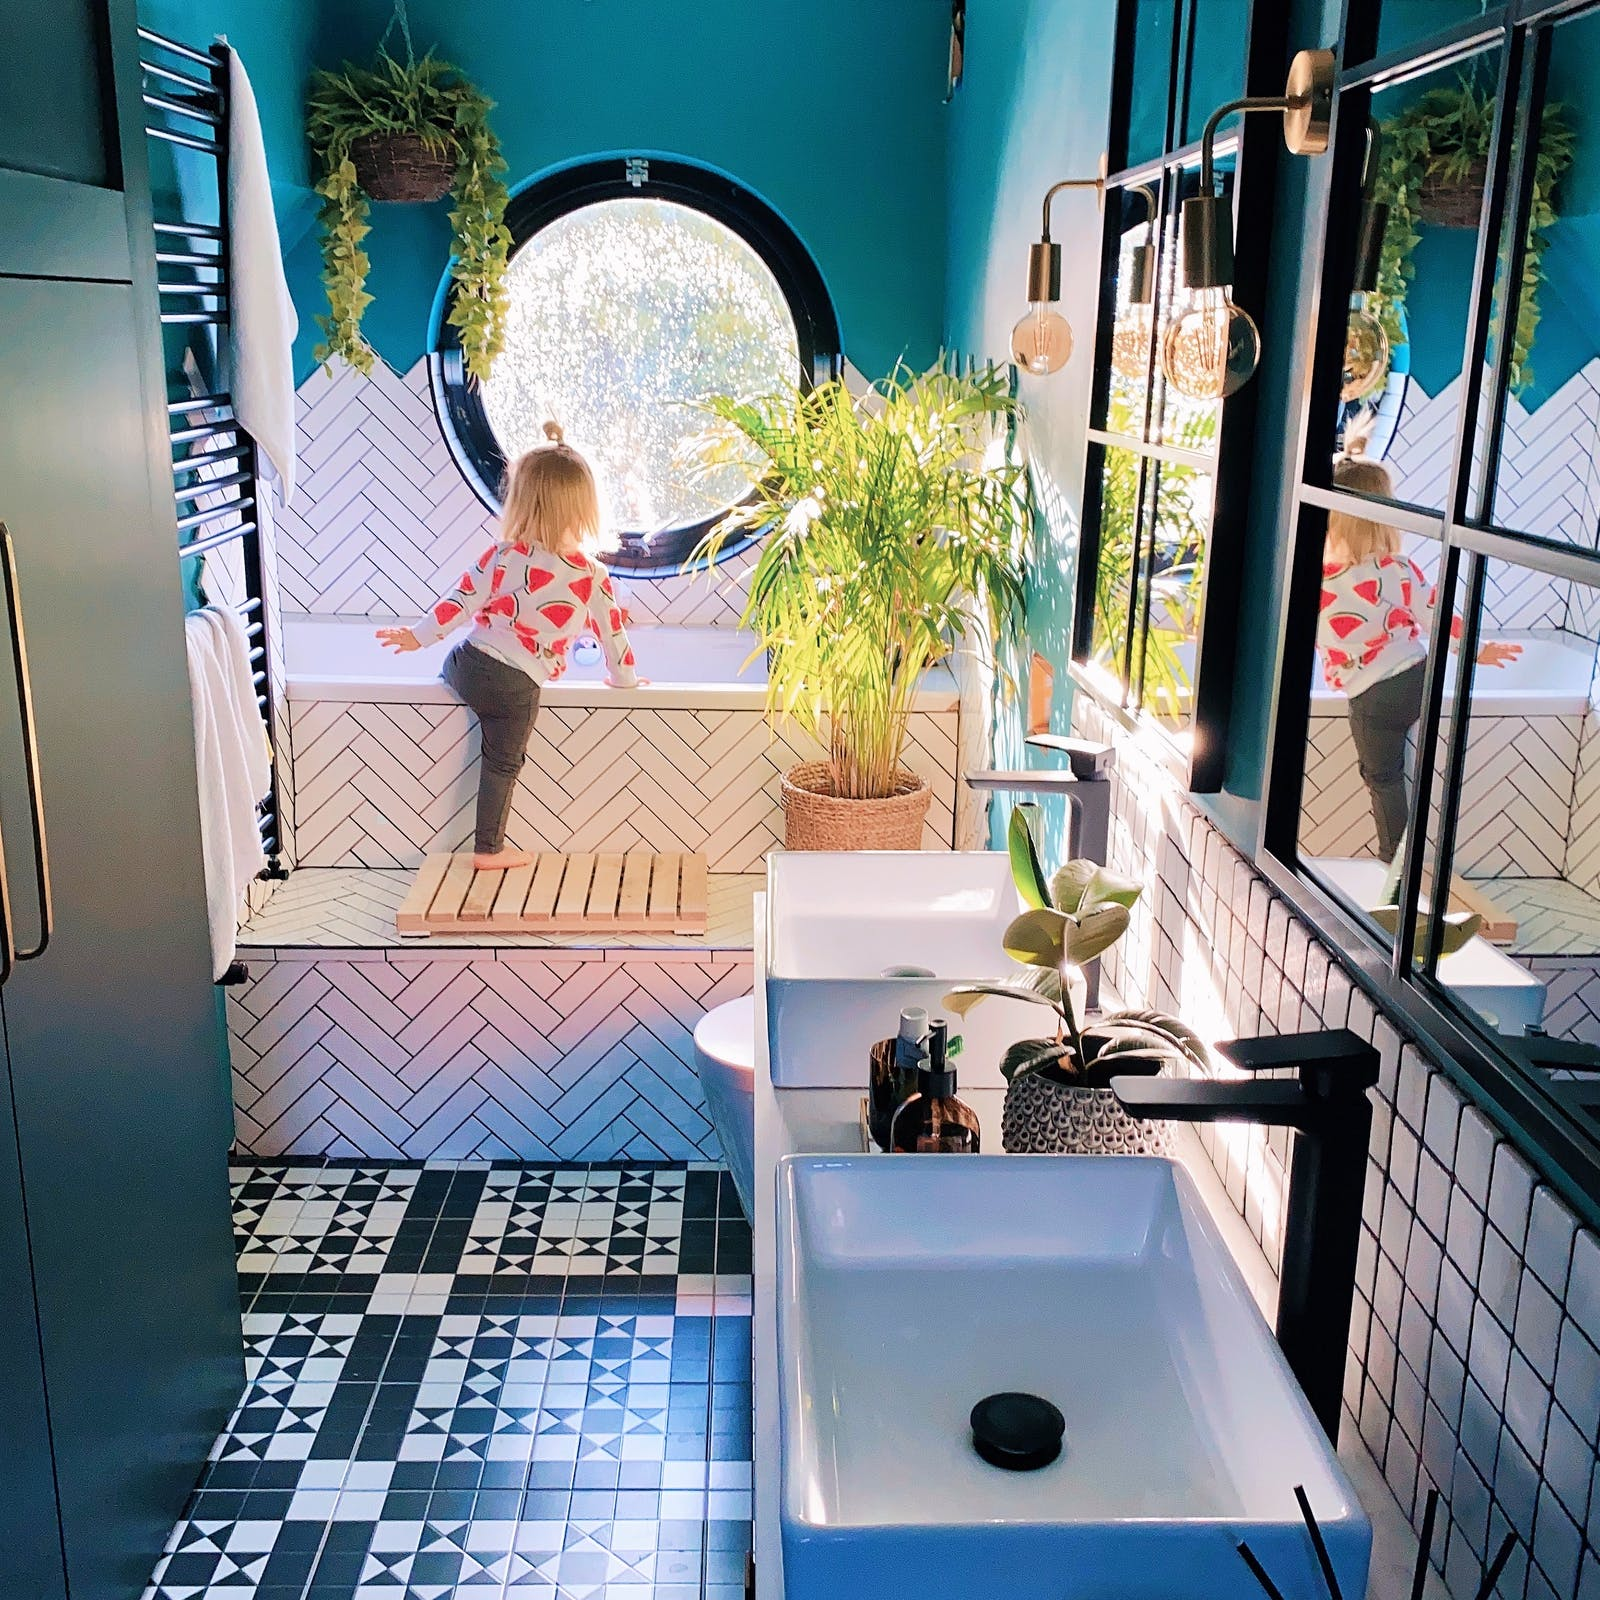 Teal ensuite bathroom with blonde child climbing in bath